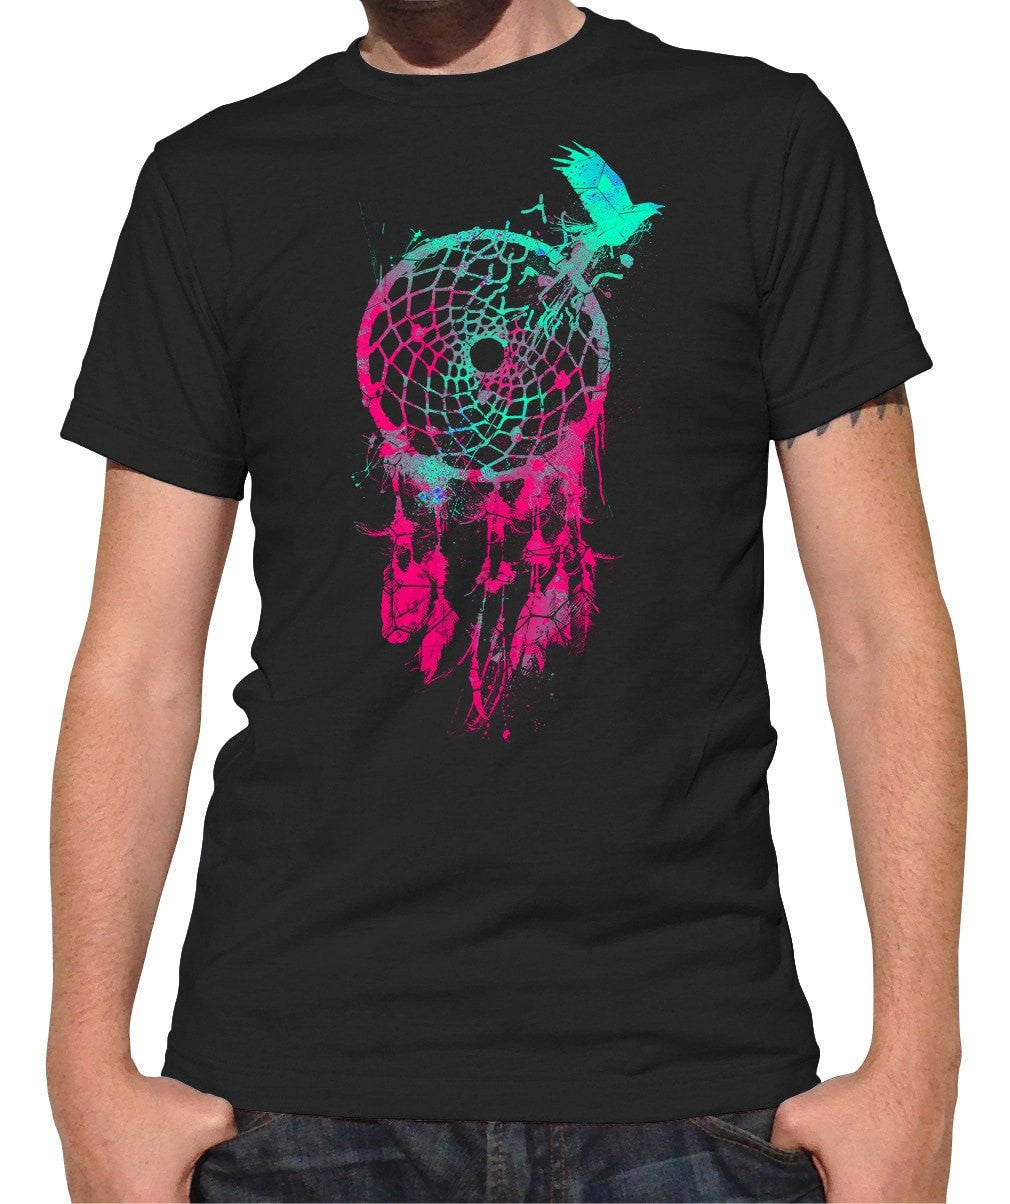 Men's DreamCatcher and Bird T-Shirt